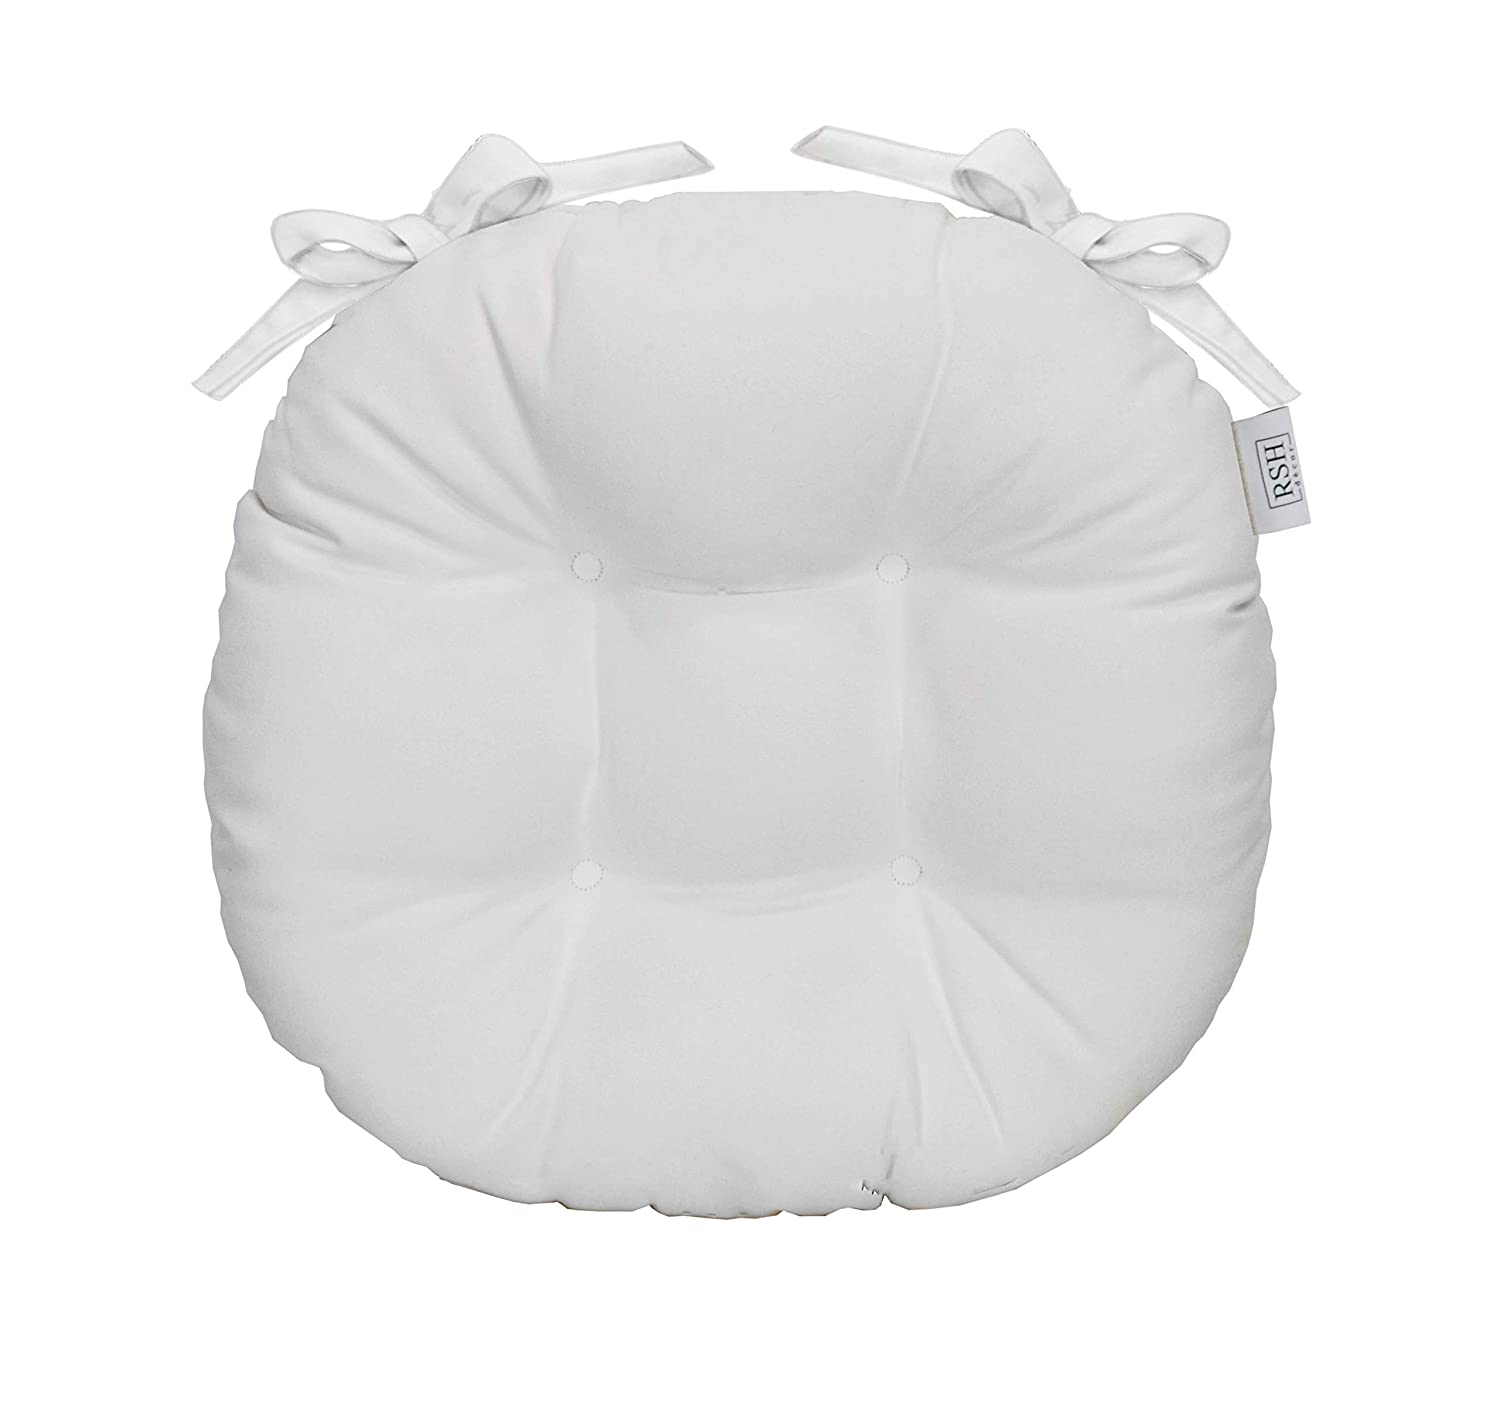 RSH Décor Indoor/Outdoor Round Tufted Bistro Chair Cushion with Ties - Made with Sunbrella Canvas White (14